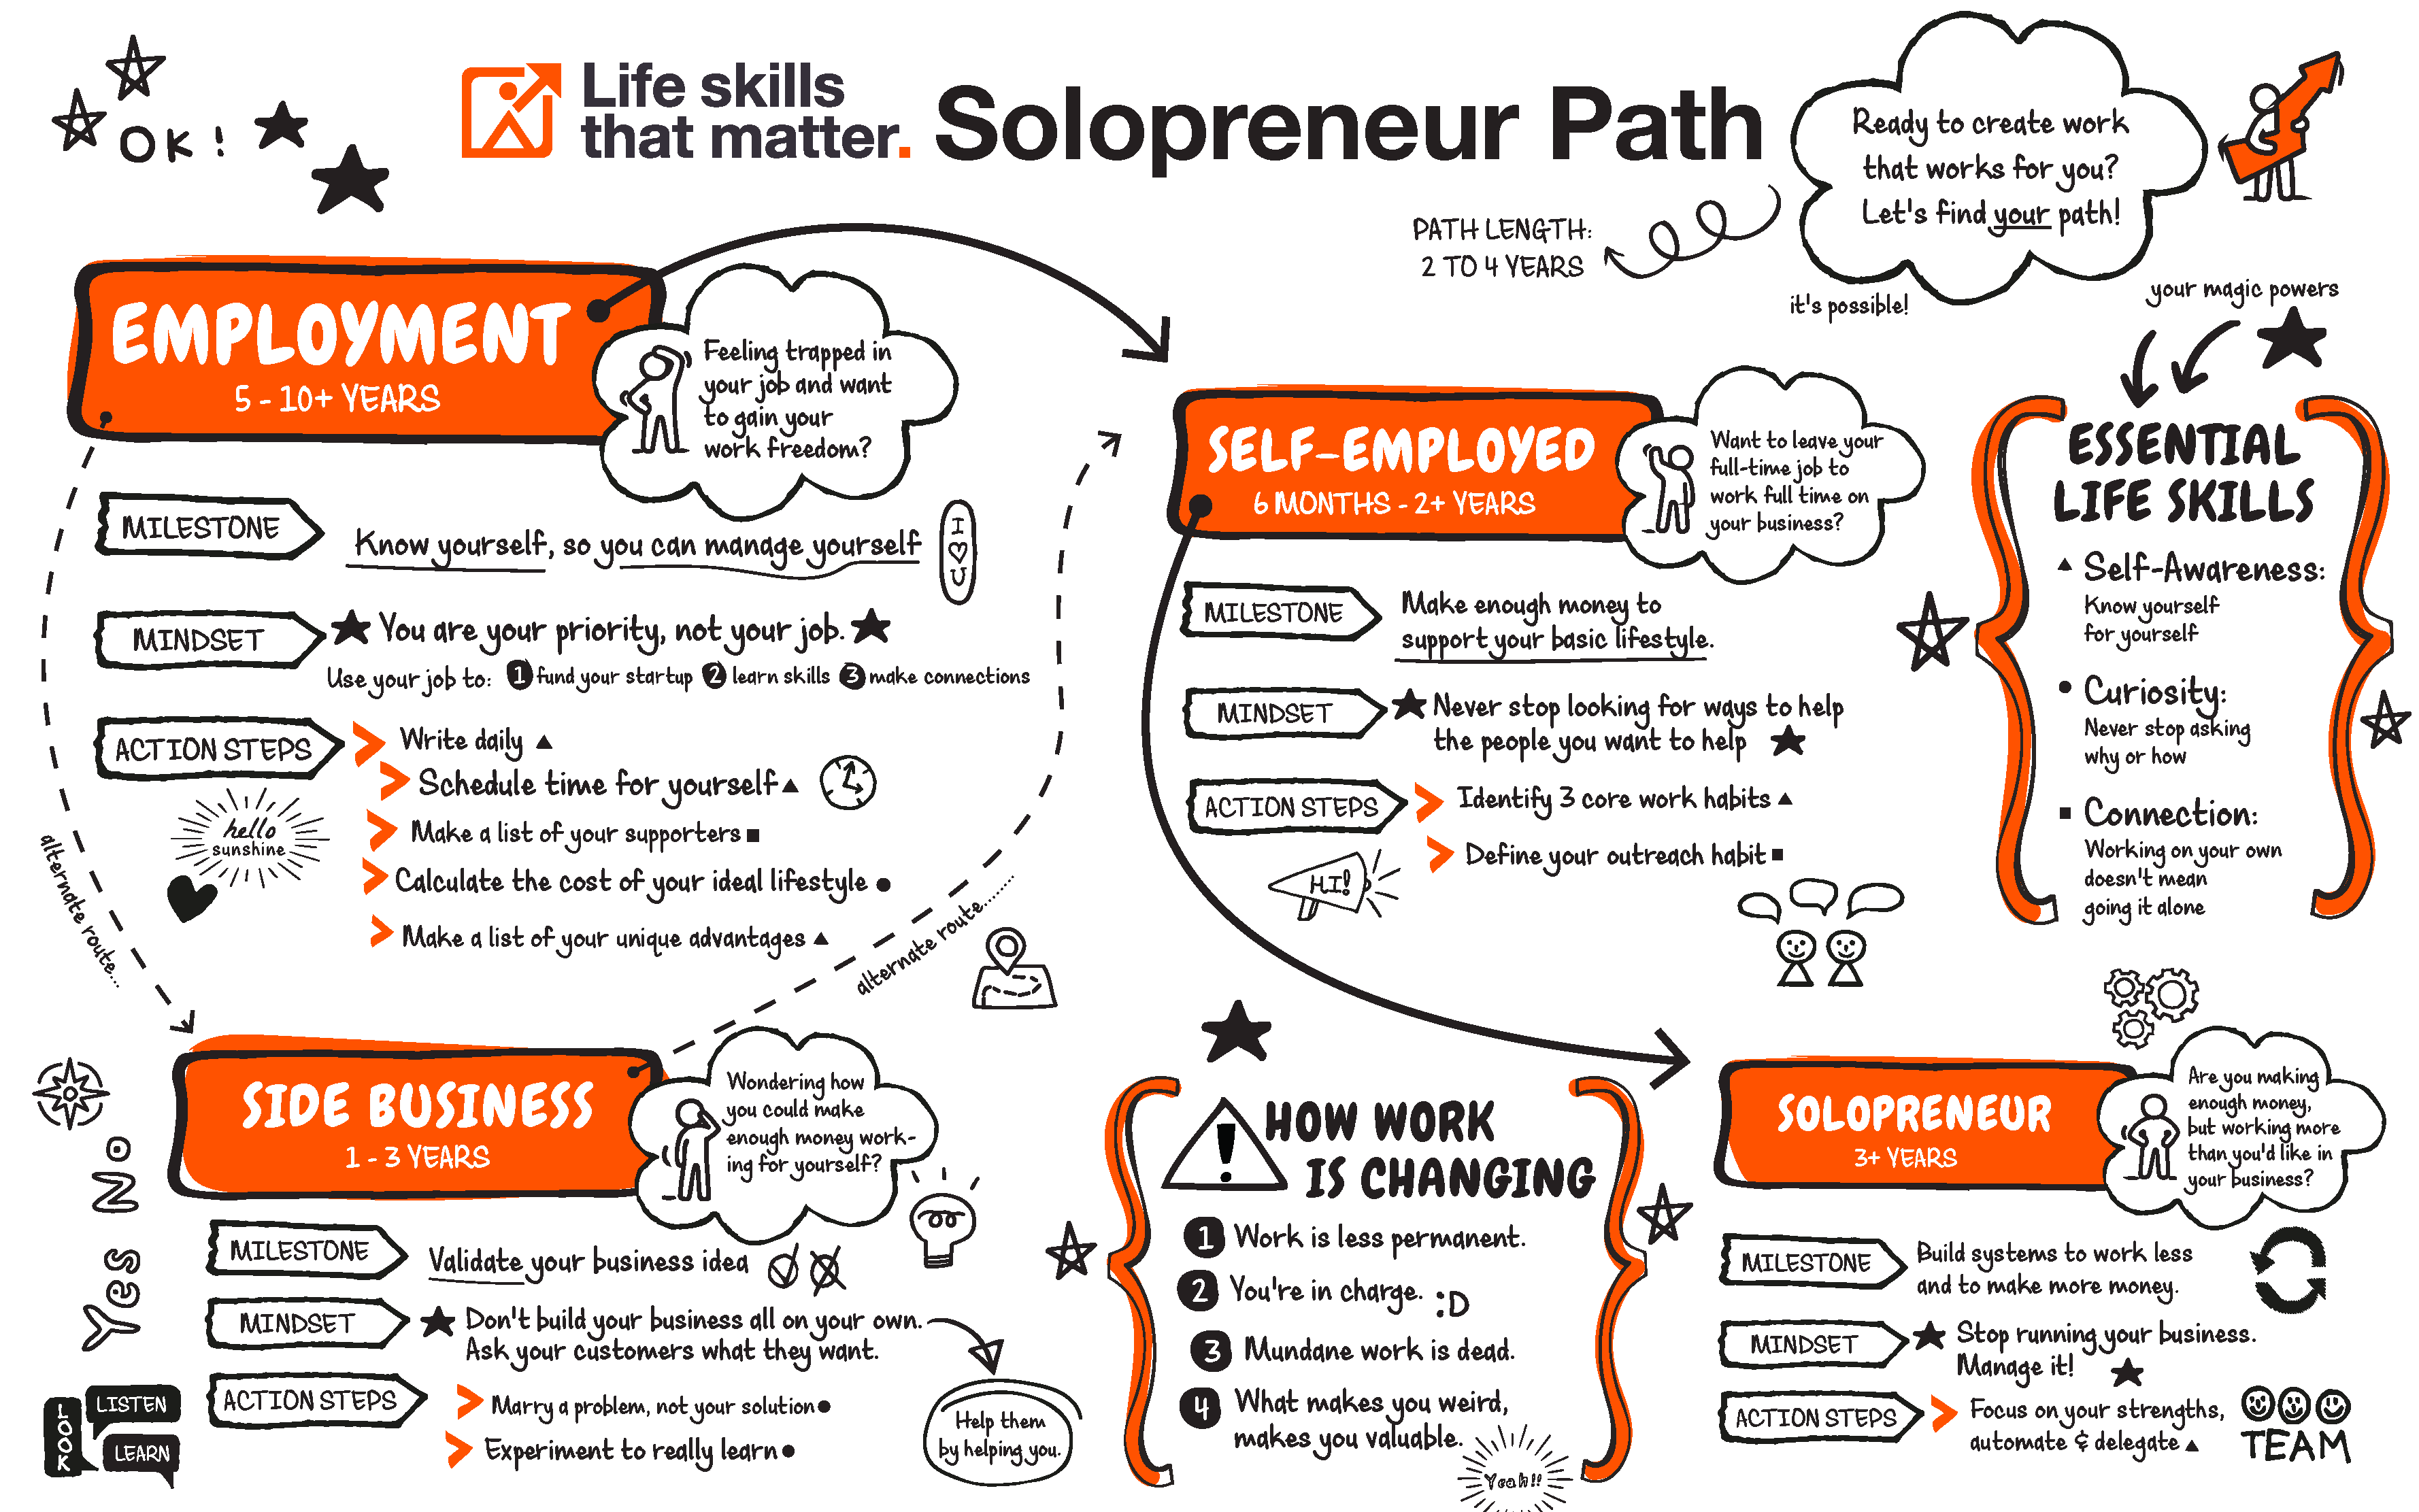 Path From Employed to Self-Employed to Solopreneur